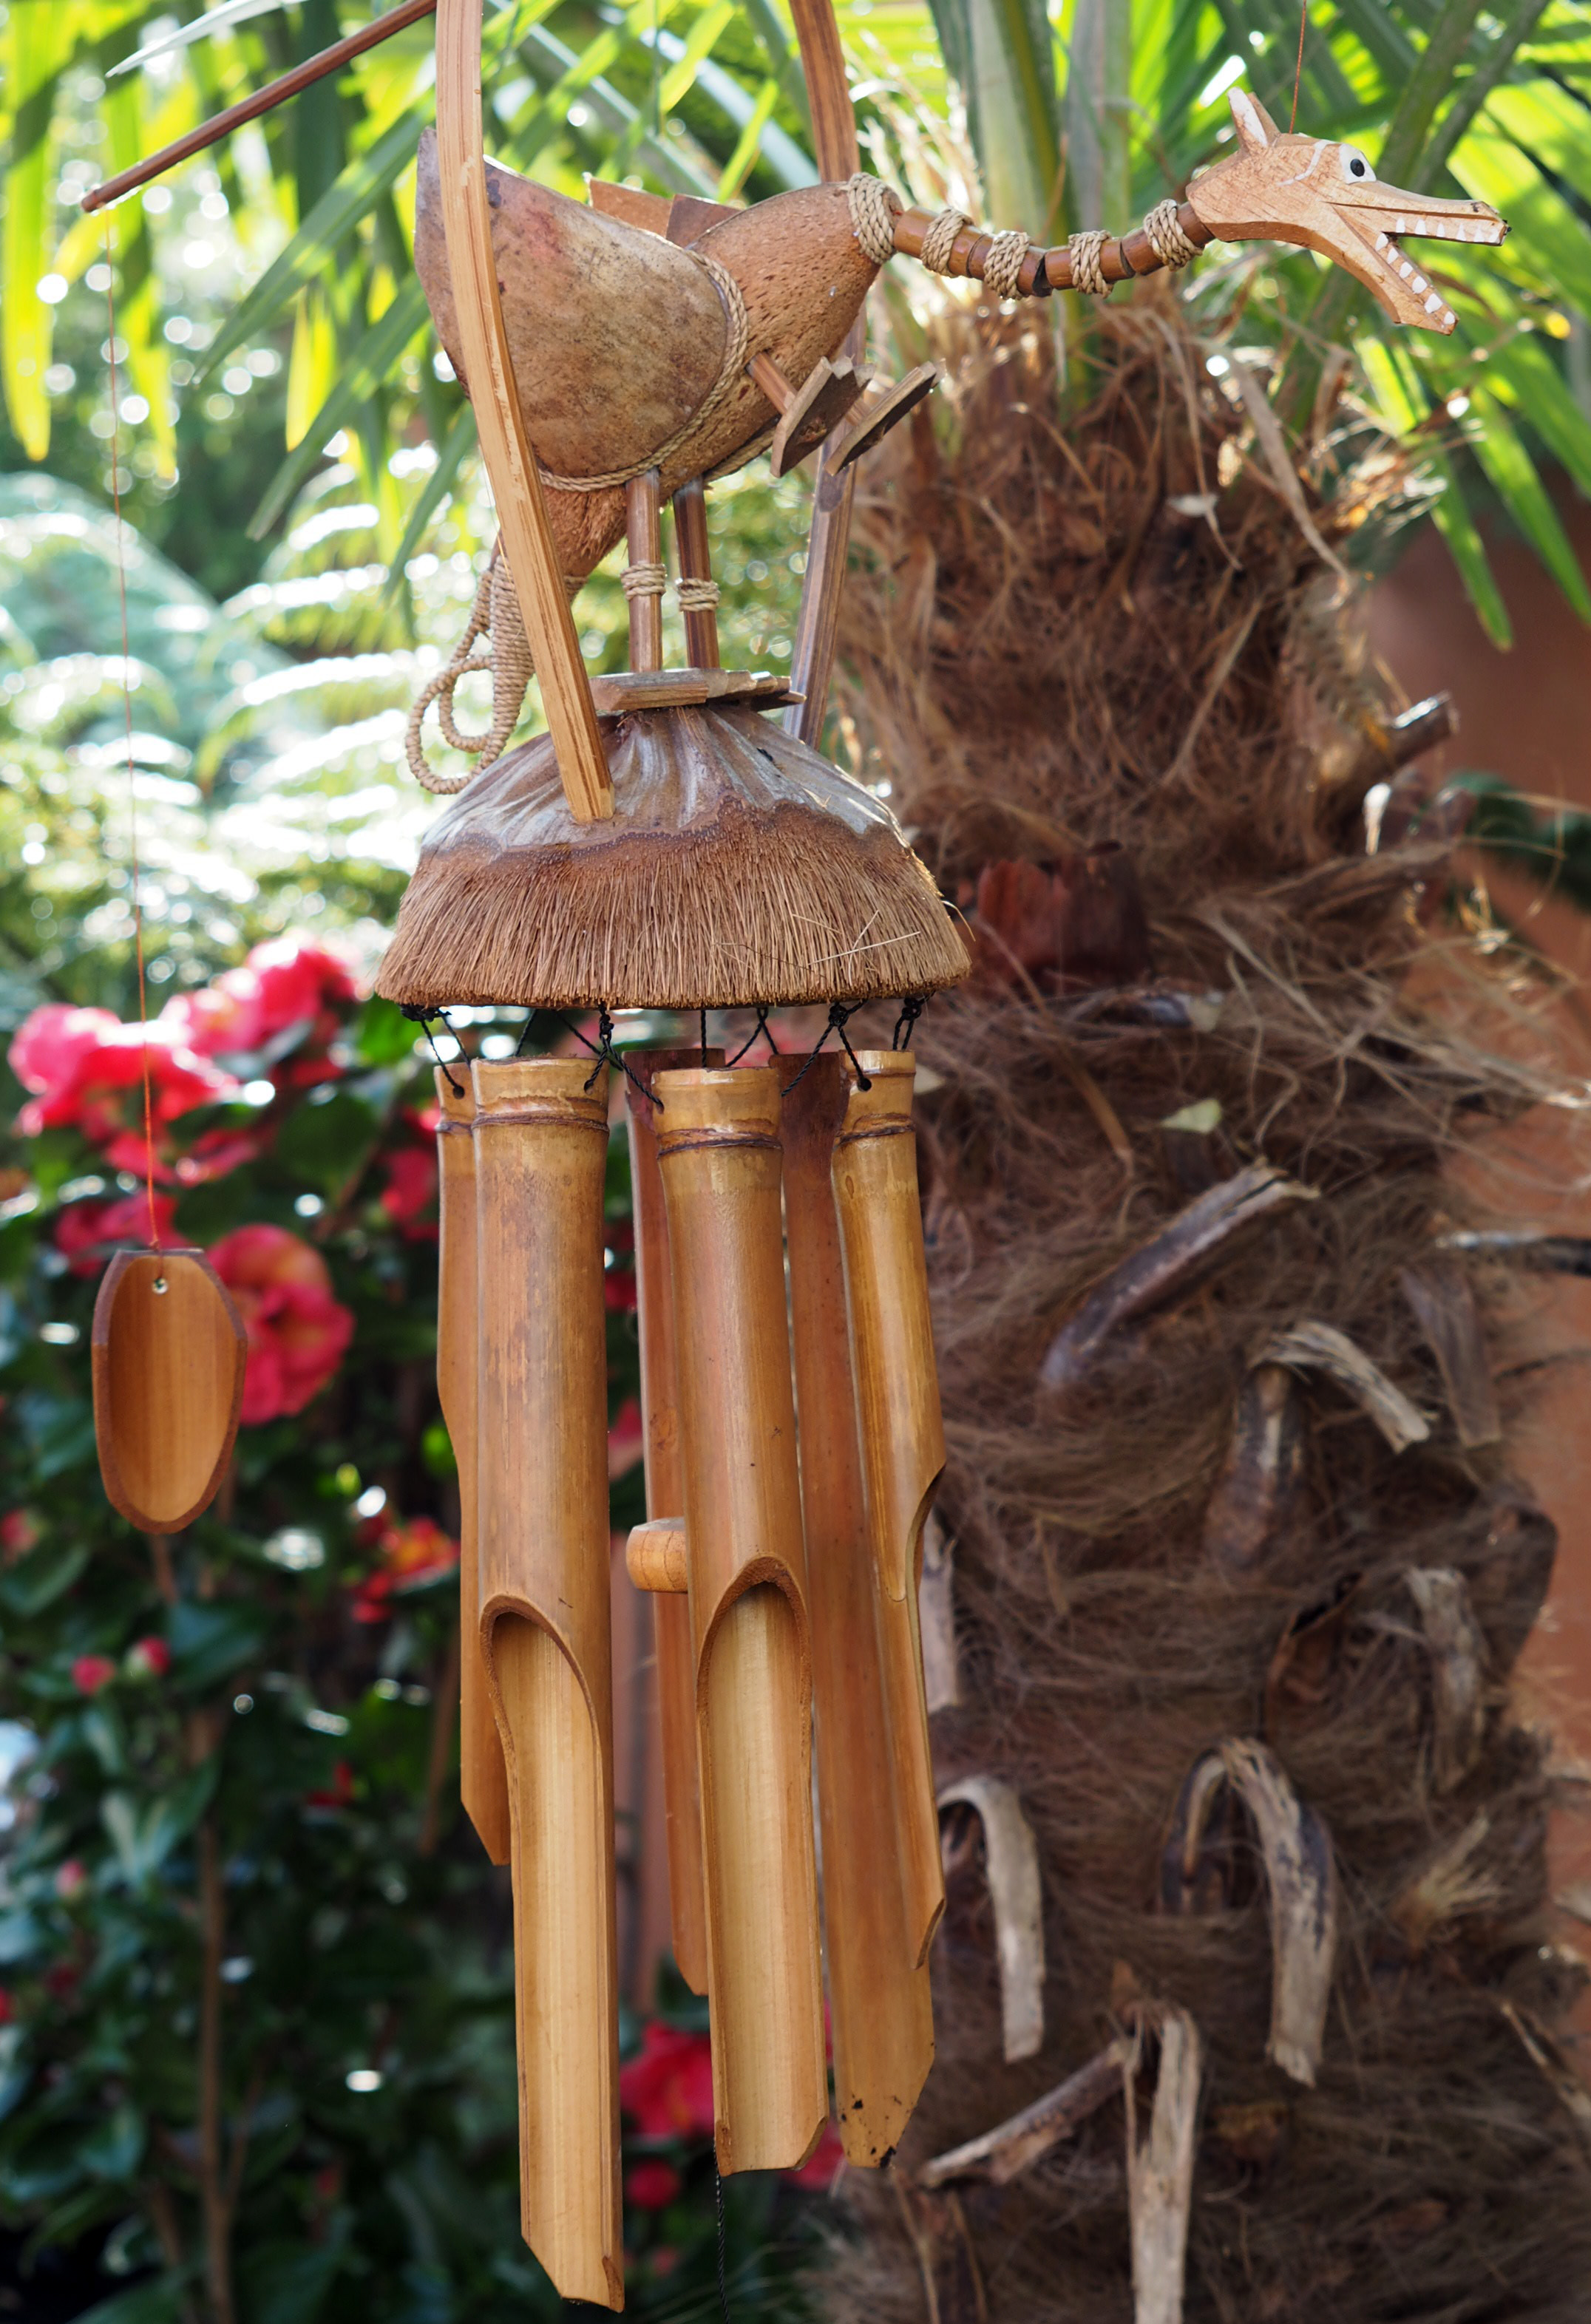 Large-Handmade-Fair-Trade-Coconut-And-Bamboo-Wind-Chime-Mobiles-6-Designs miniatuur 7